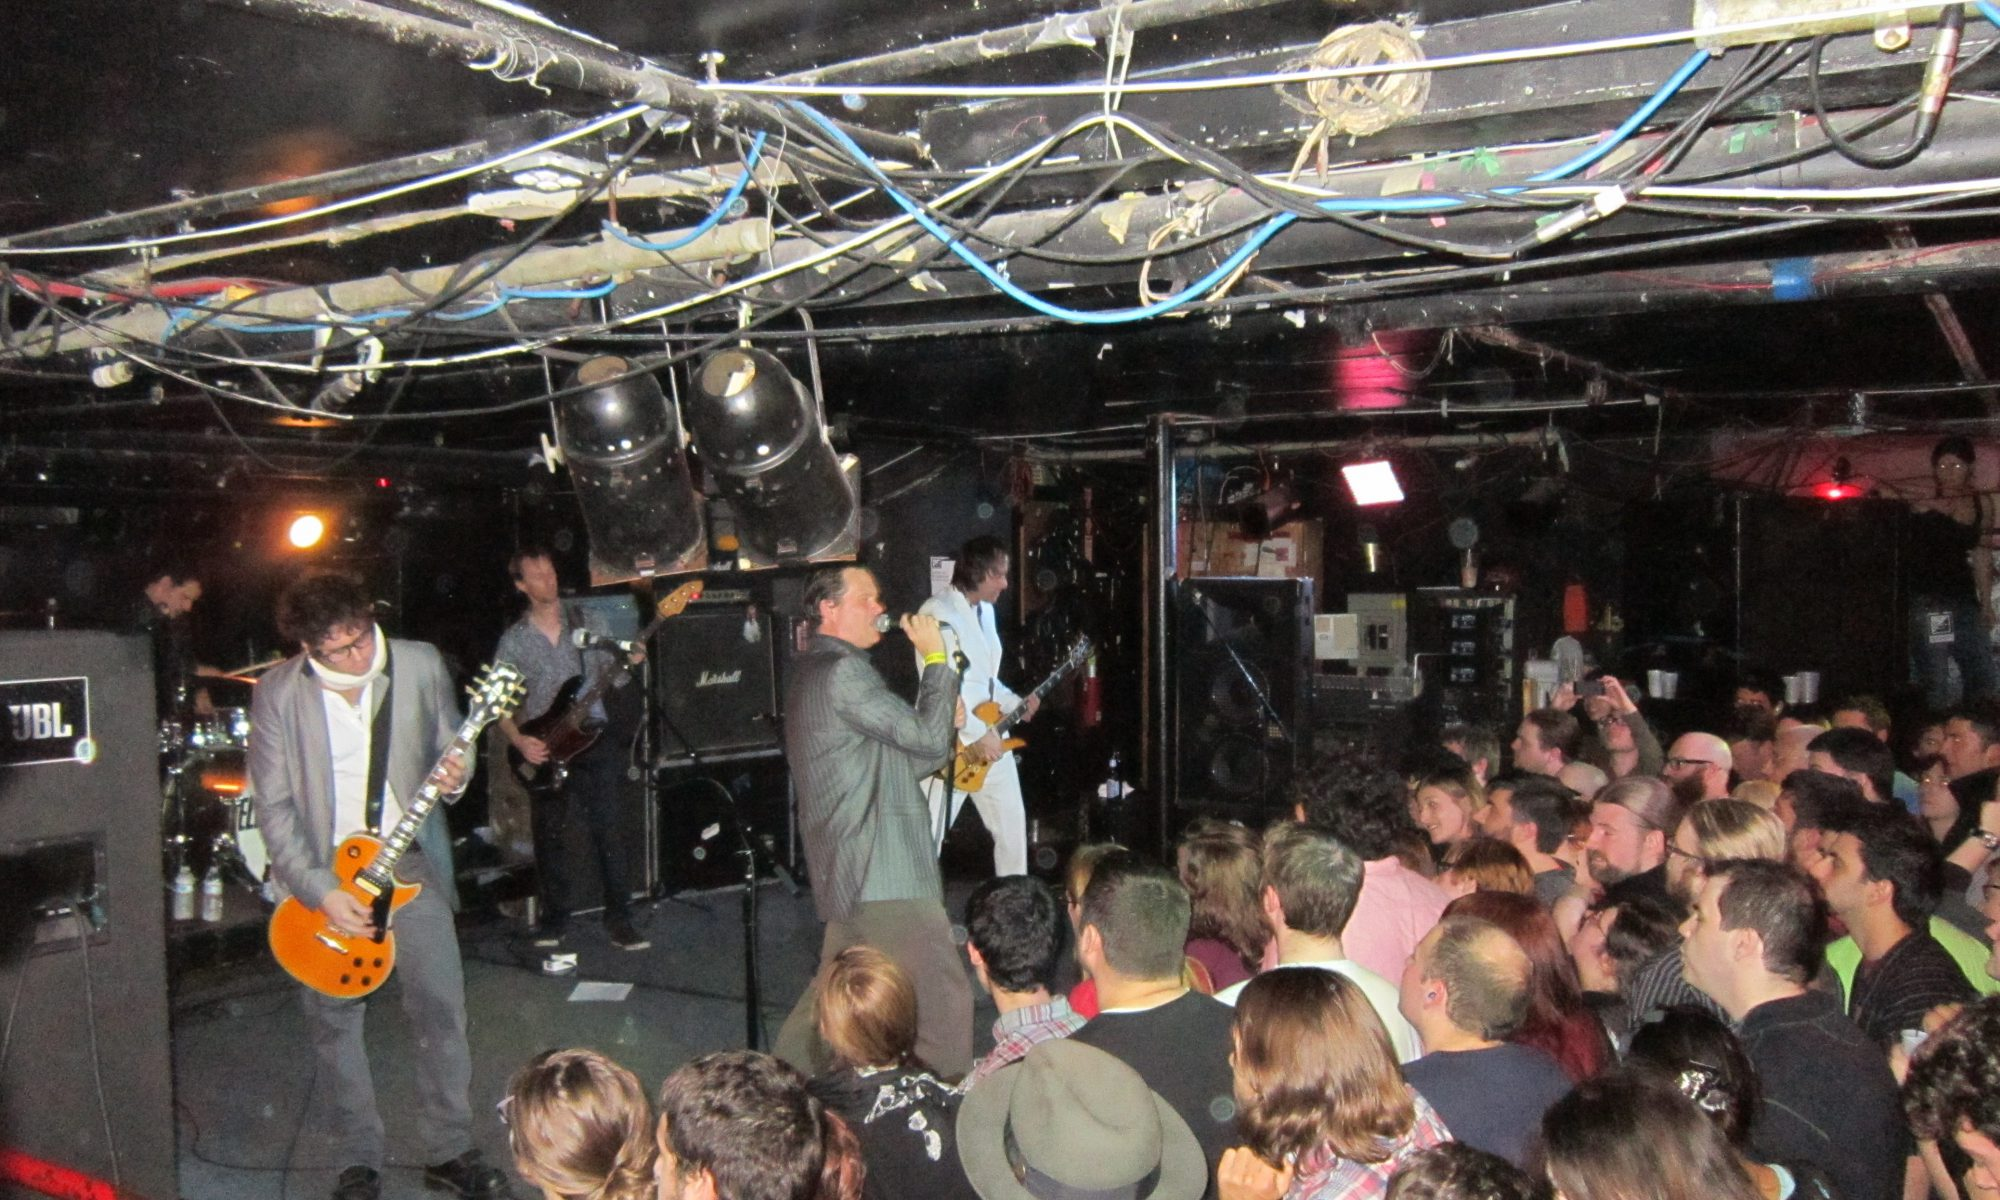 Concert Review: Electric Six